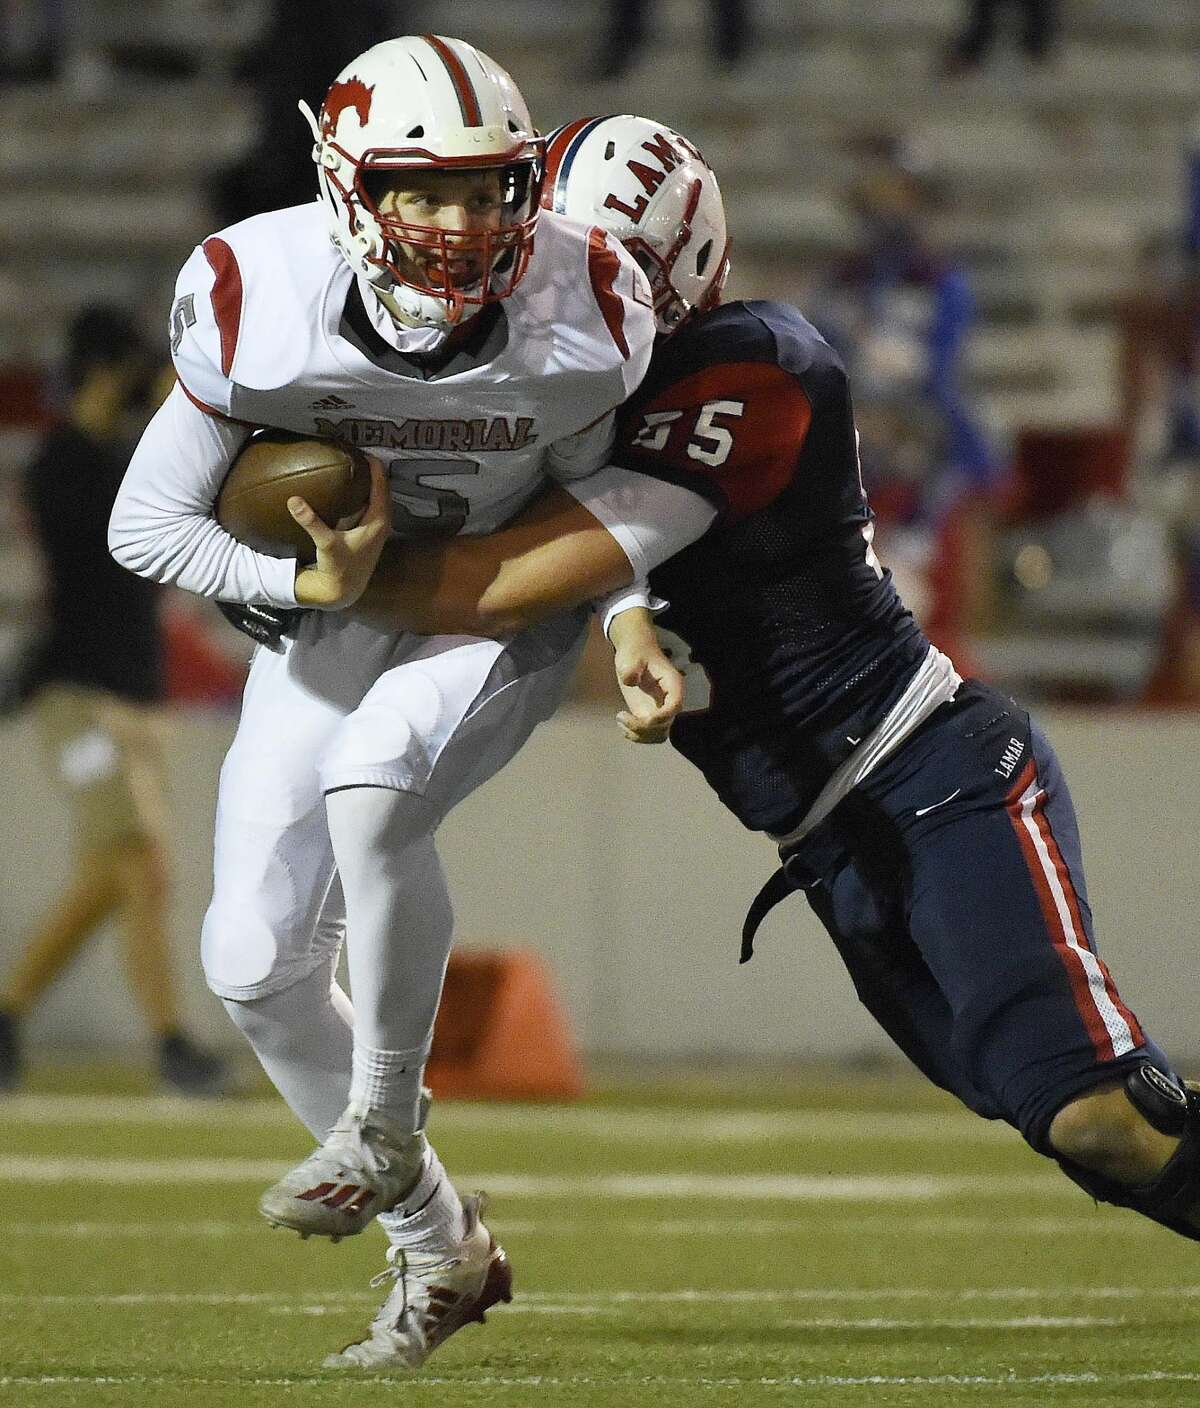 Memorial quarterback Ian Stinneford (5) is sacked by Lamar defensive lineman Max Shilstone during the first half of a 6A Division II Region III bi-district high school football playoff game, Thursday, Dec. 10, 2020, in Houston.